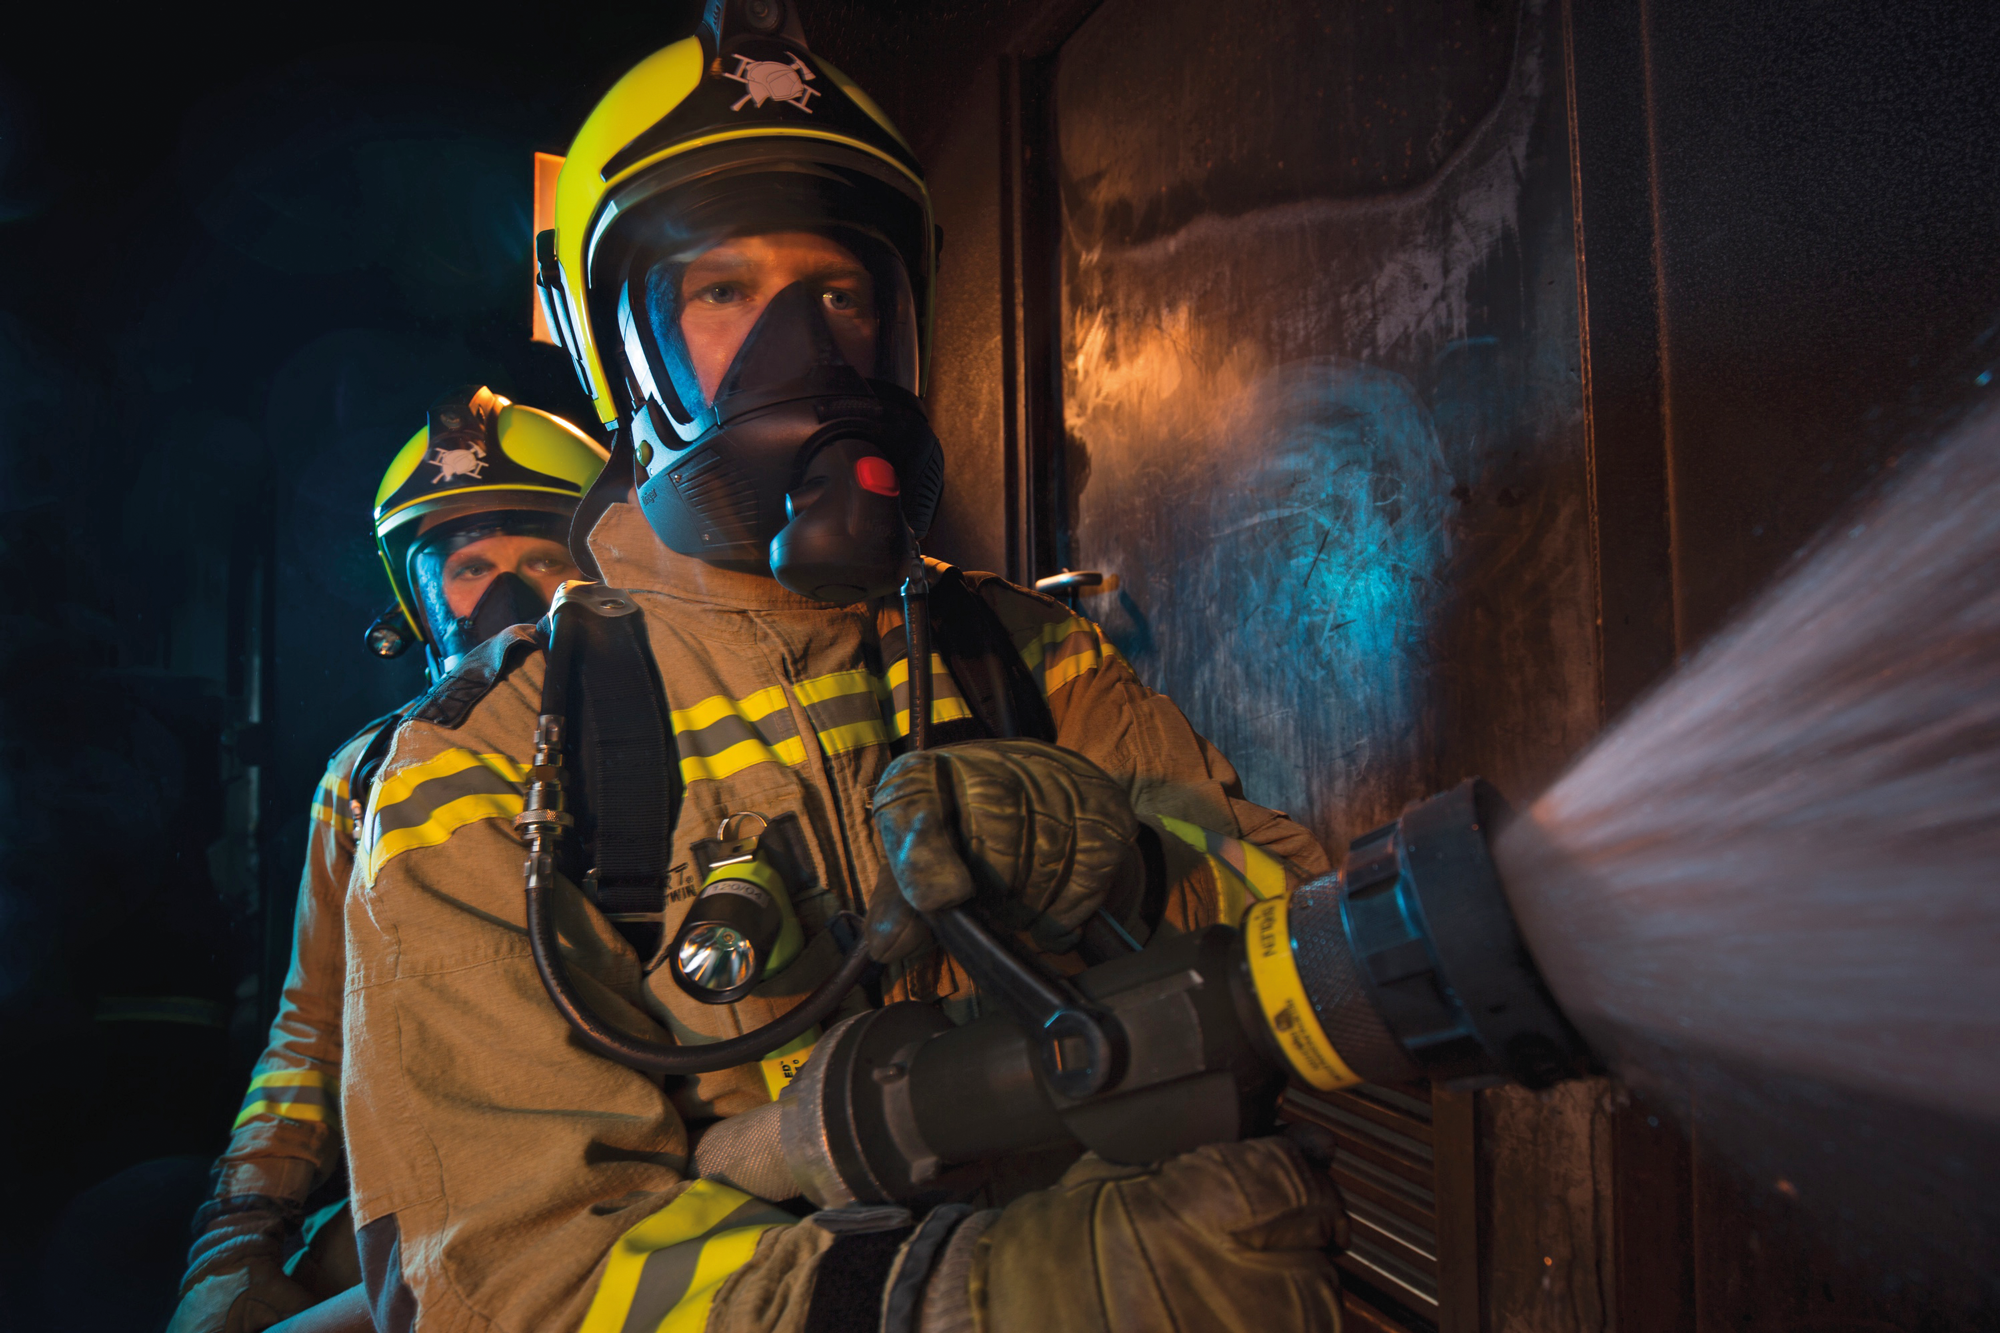 Firefighters wearing breathing apparatus from Dräger.